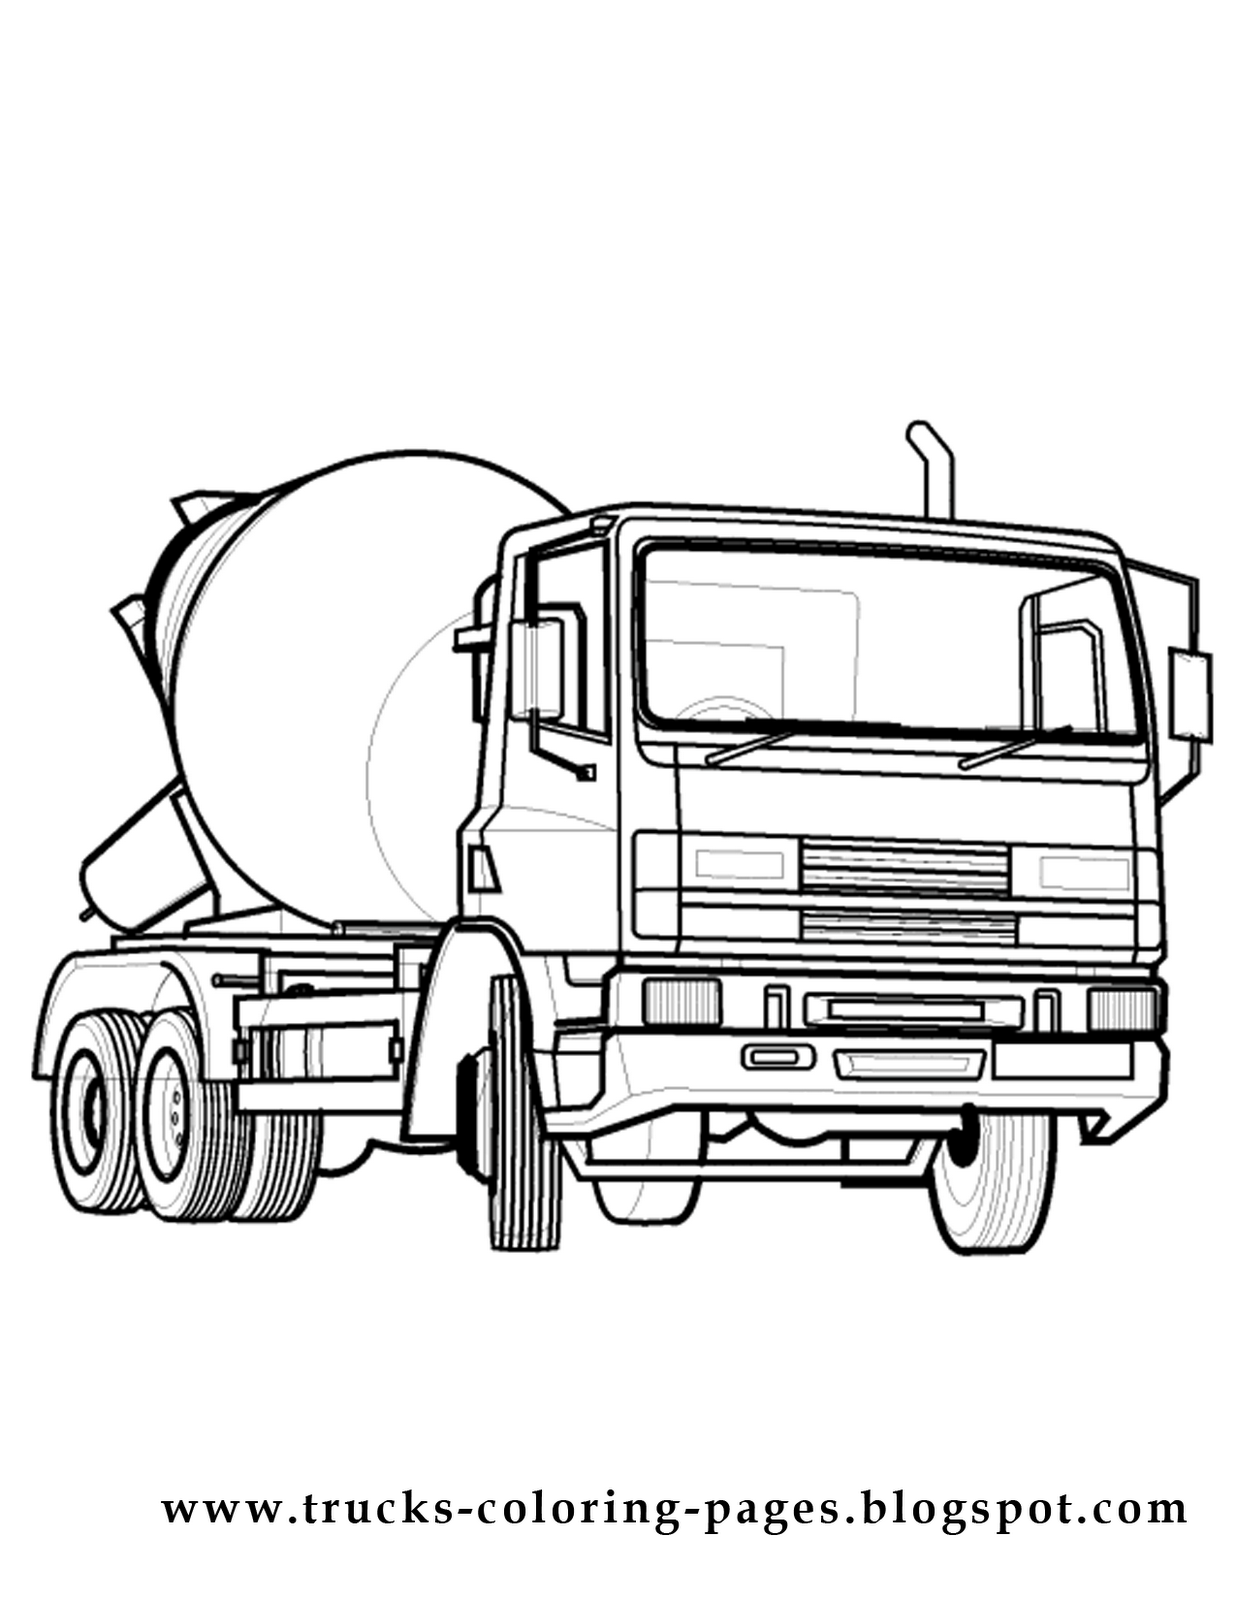 Truck Coloring Pages To Print (12 Image) - Colorings.net